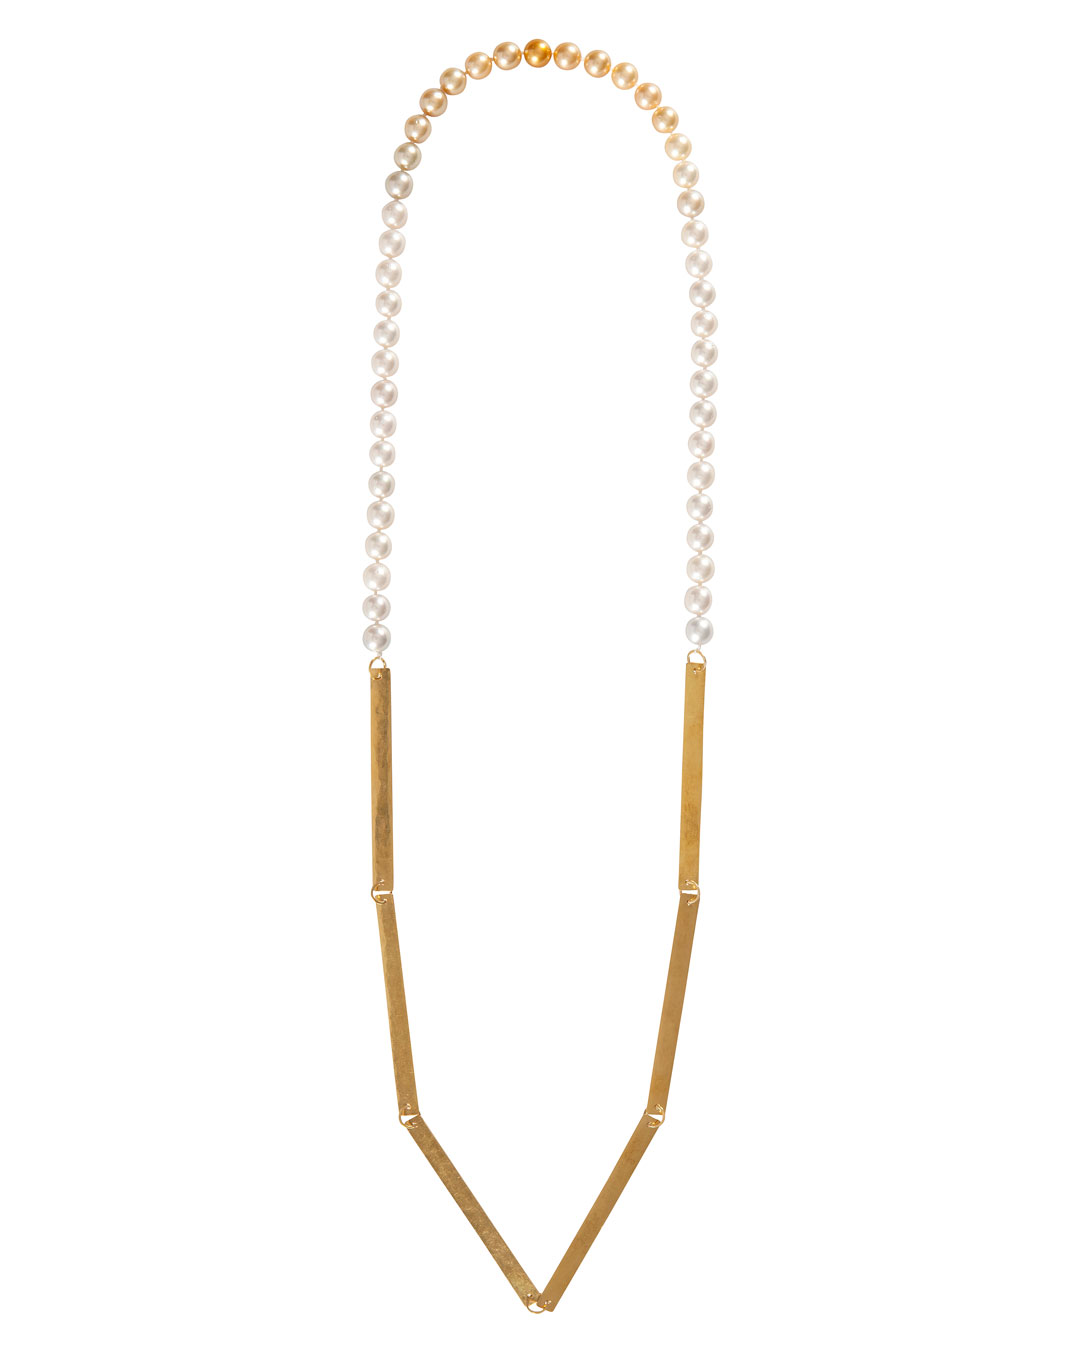 Annelies Planteijdt, Mooie stad – Collier en Chanel no.19 (Beautiful City - Necklace with Chanel no.19), 2017, necklace, gold, South Sea pearls, 150 x 360 mm, price on request (image 2/3)